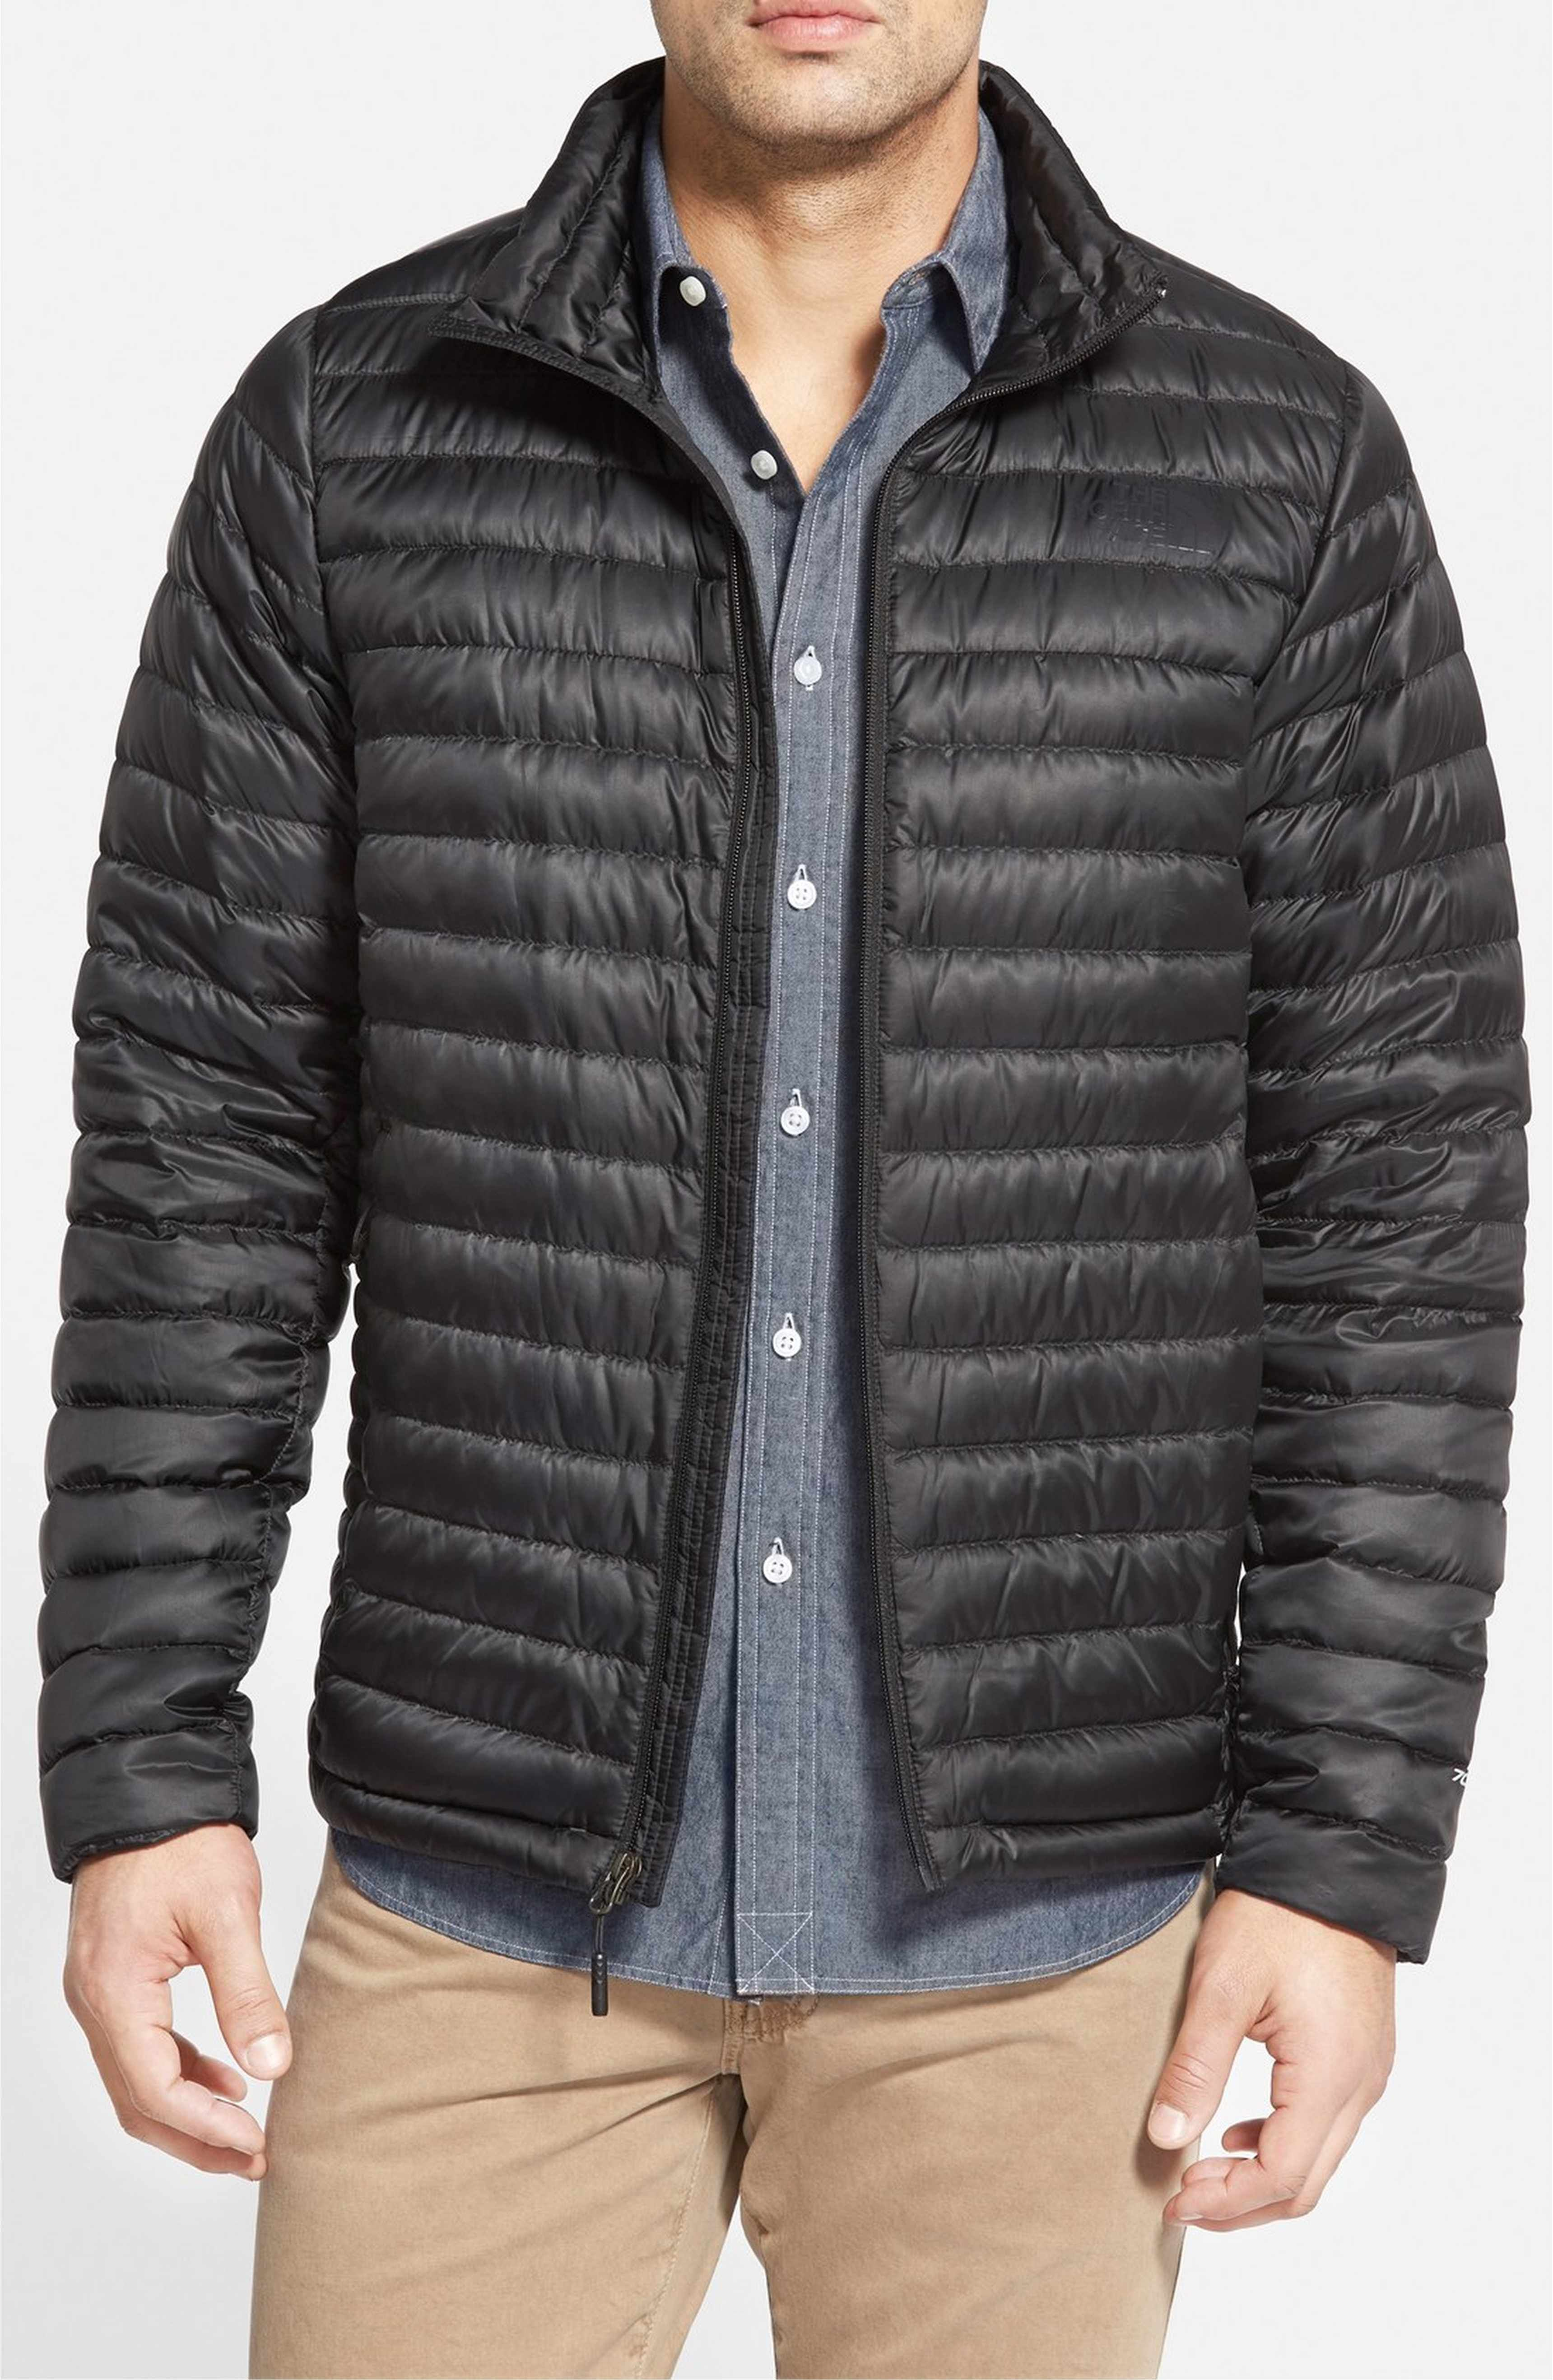 The North Face Tonnerro Packable Down Jacket Nordstrom North Face Jacket Mens Mens Puffer Jacket North Face Jacket [ 5272 x 3440 Pixel ]